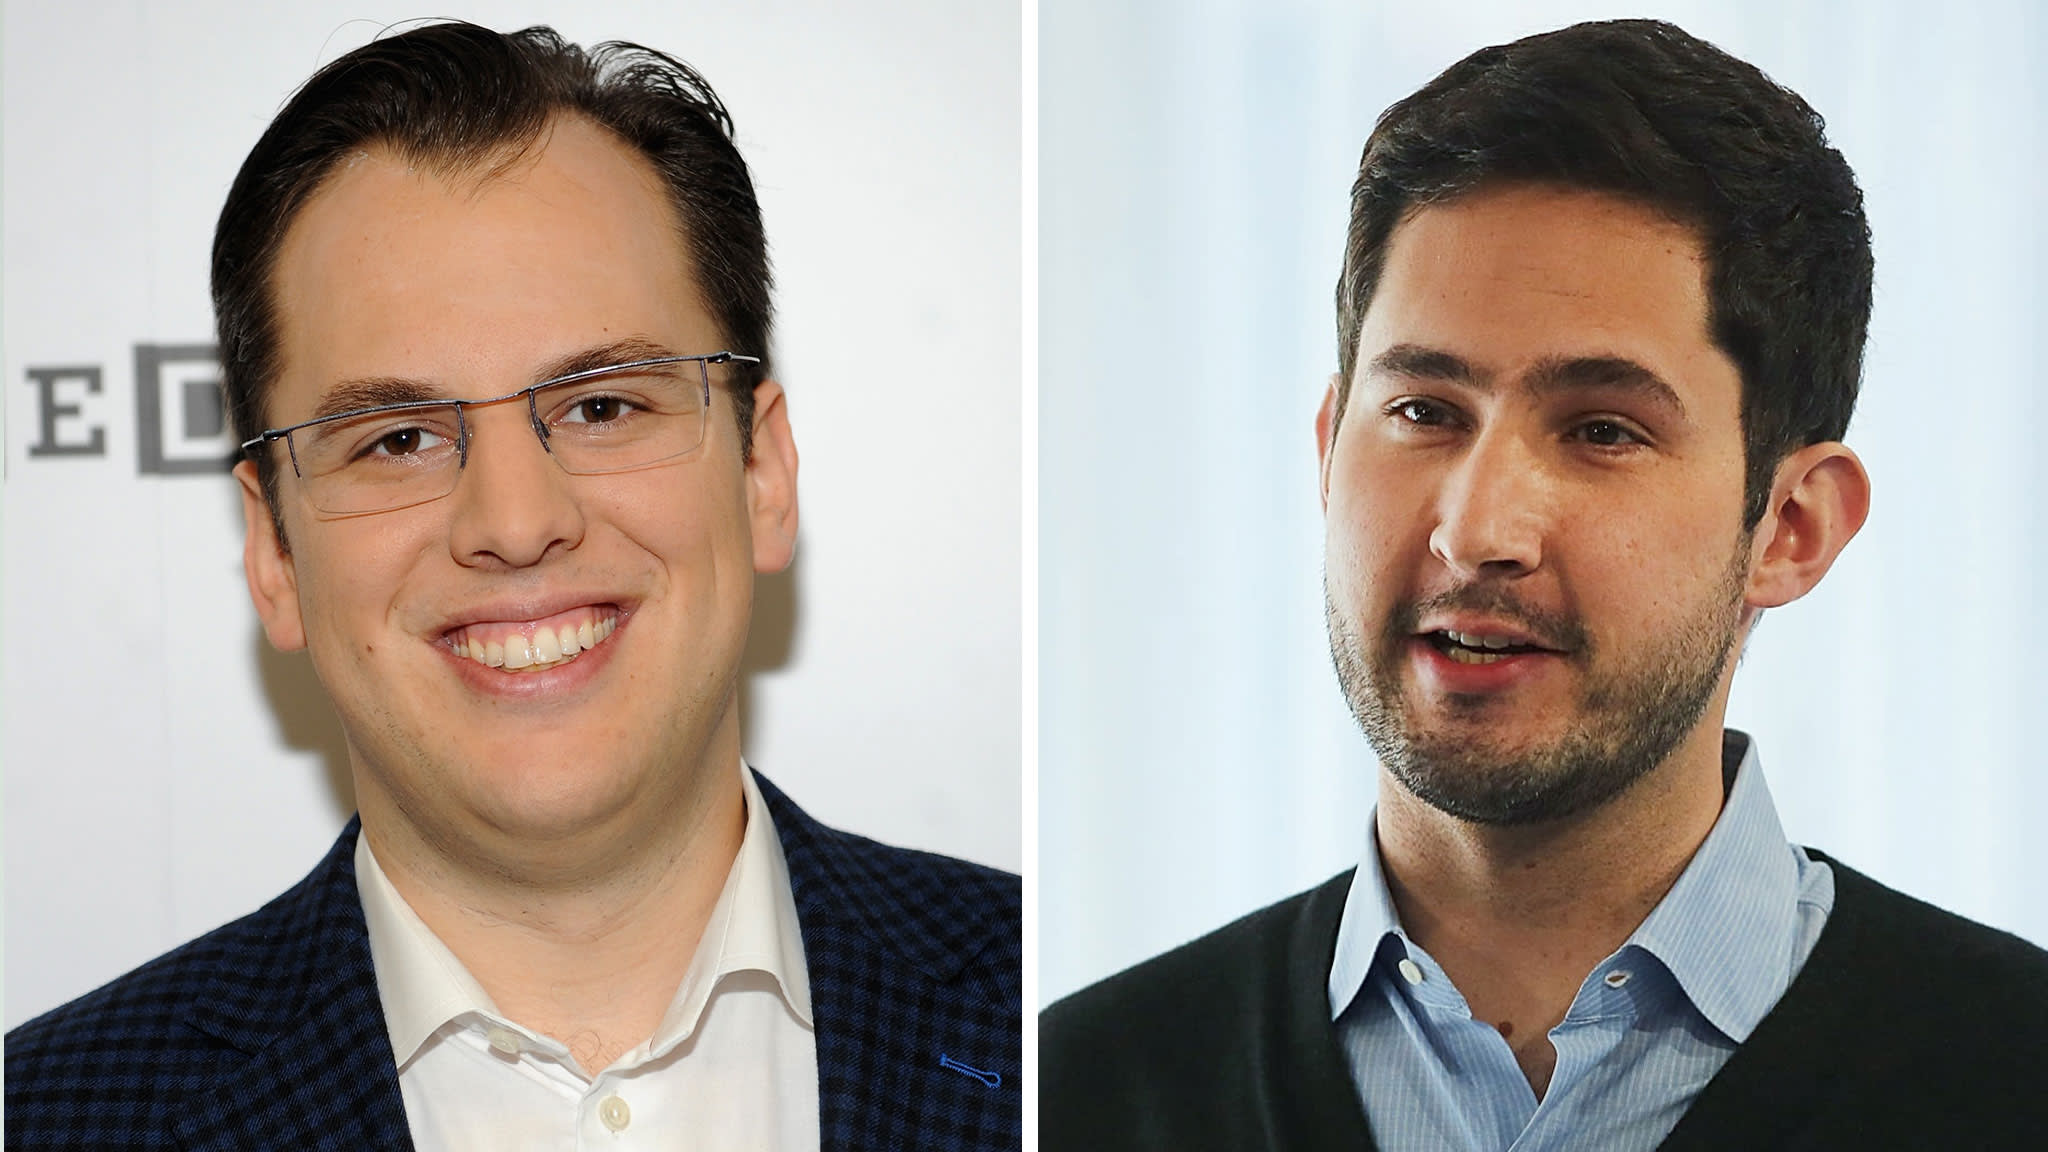 Instagram founders chafed at Facebook's growing control